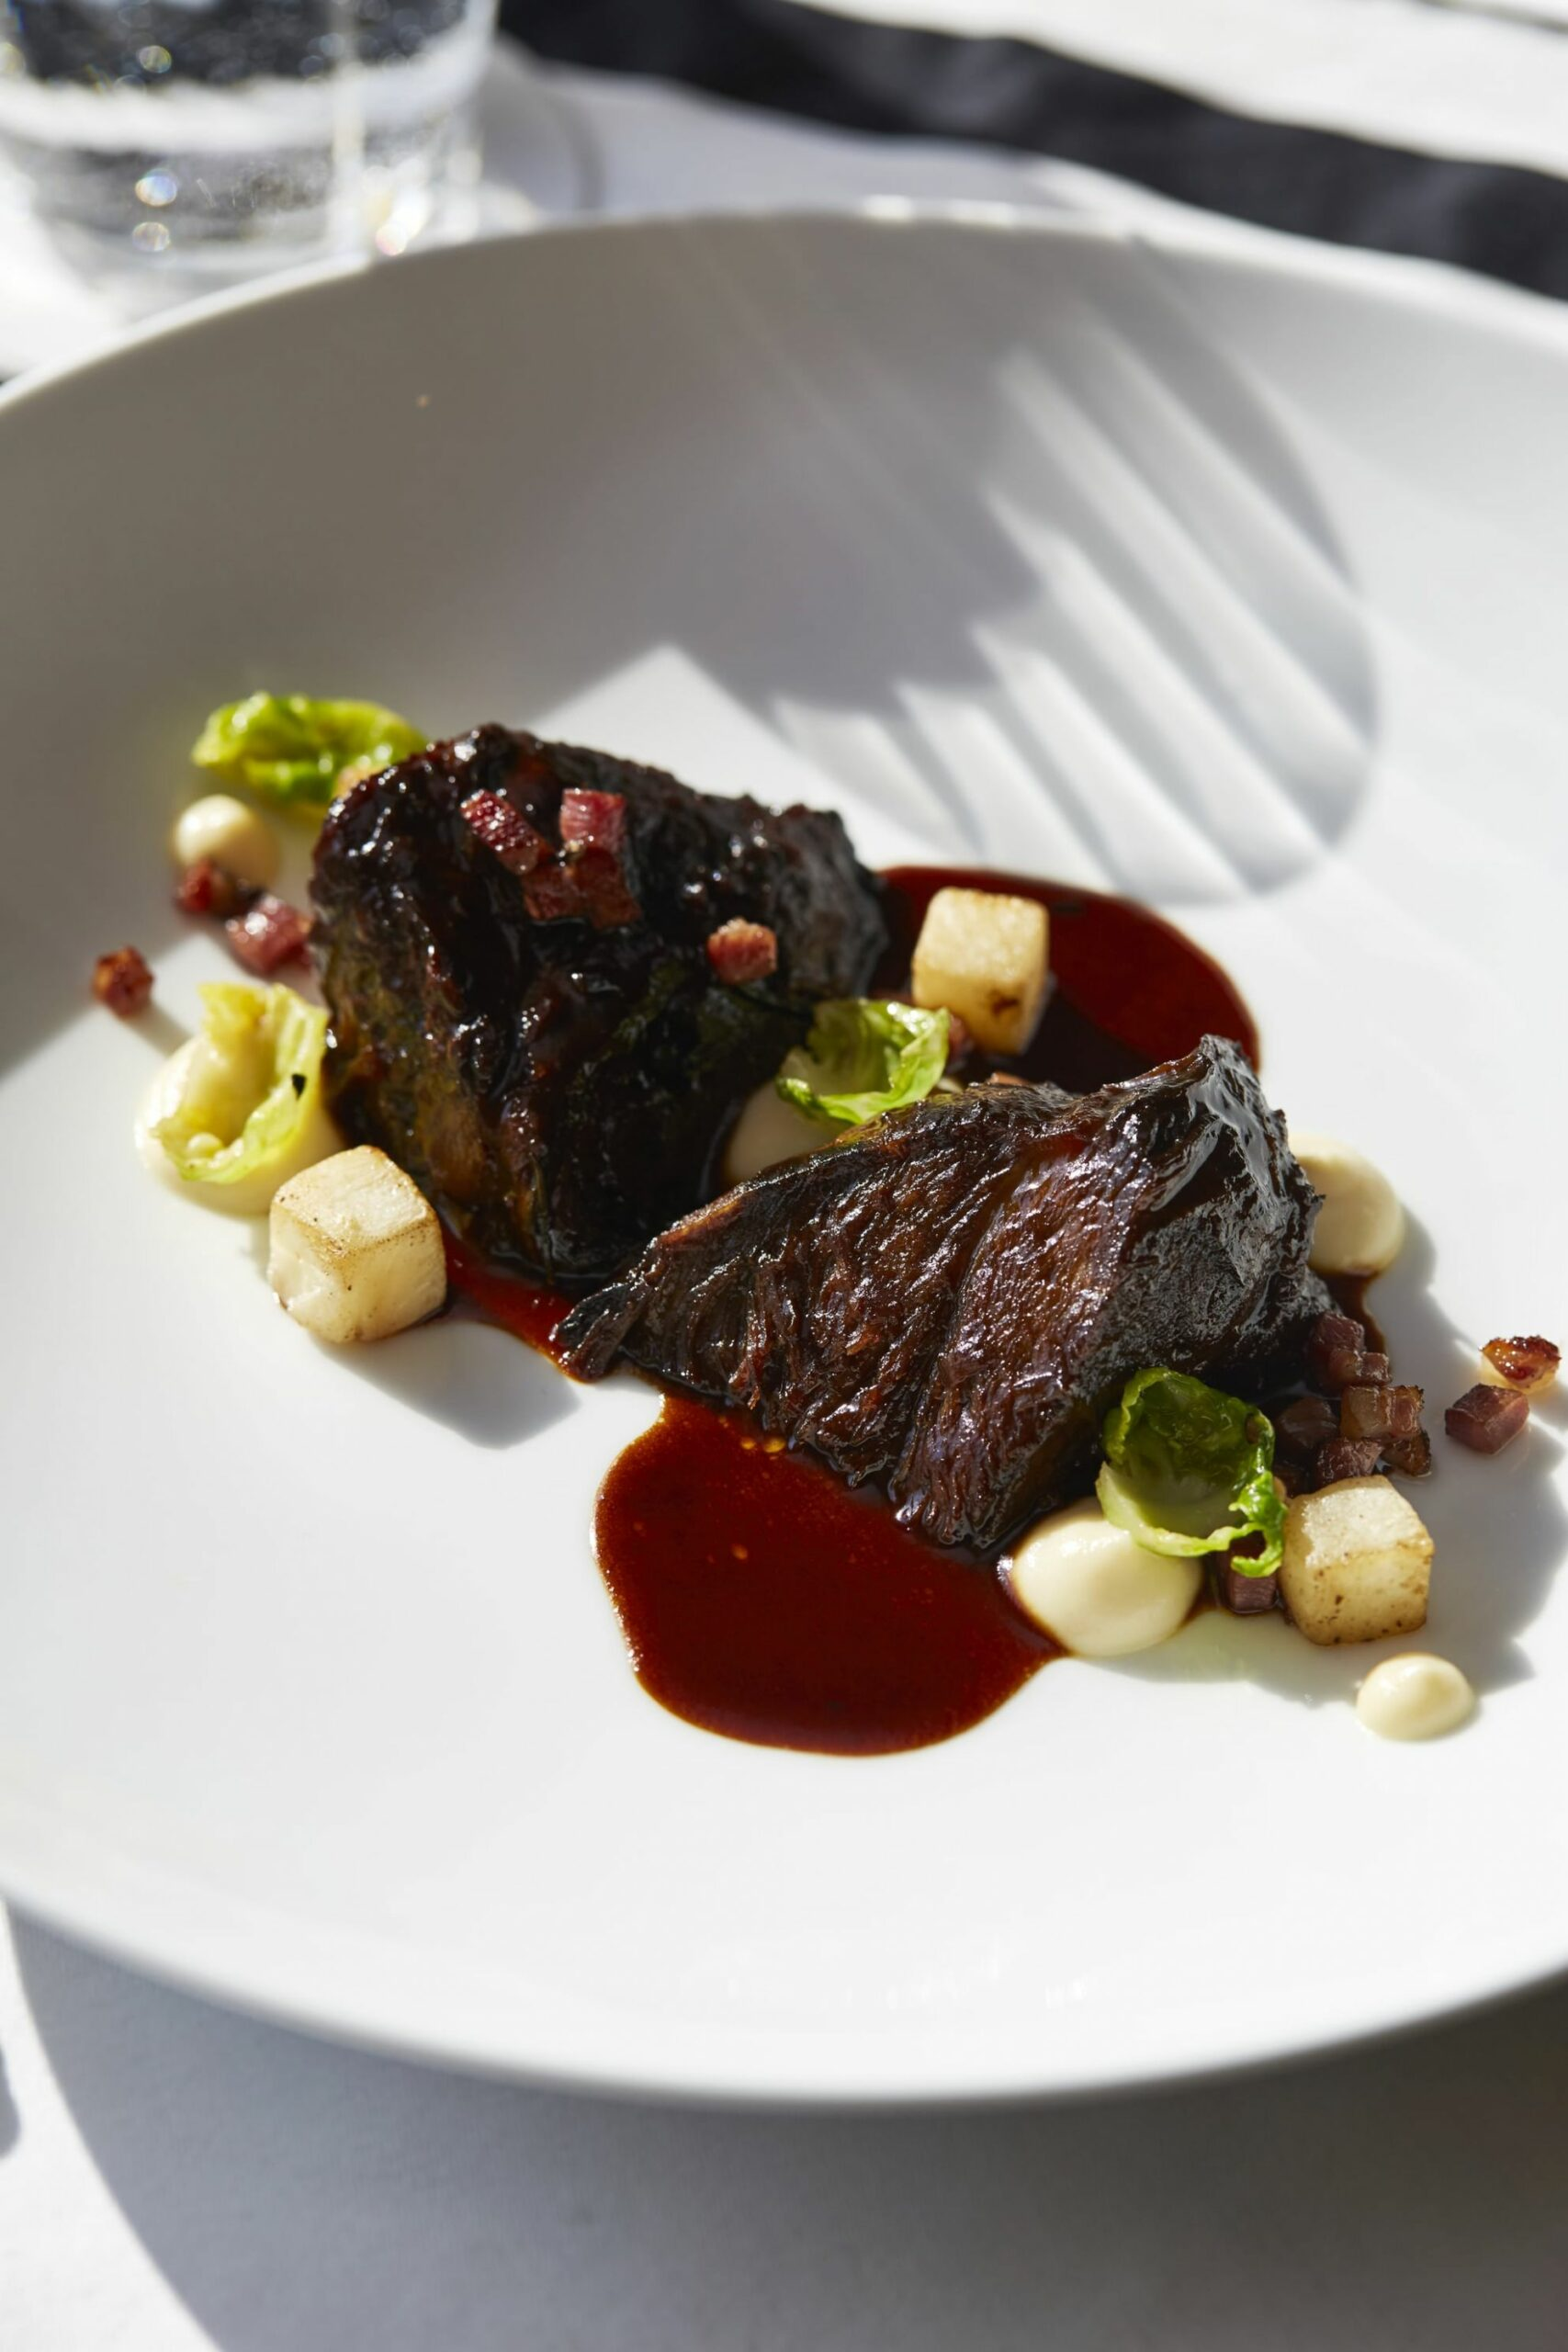 These Braised Beef Cheeks Melt in the Mouth